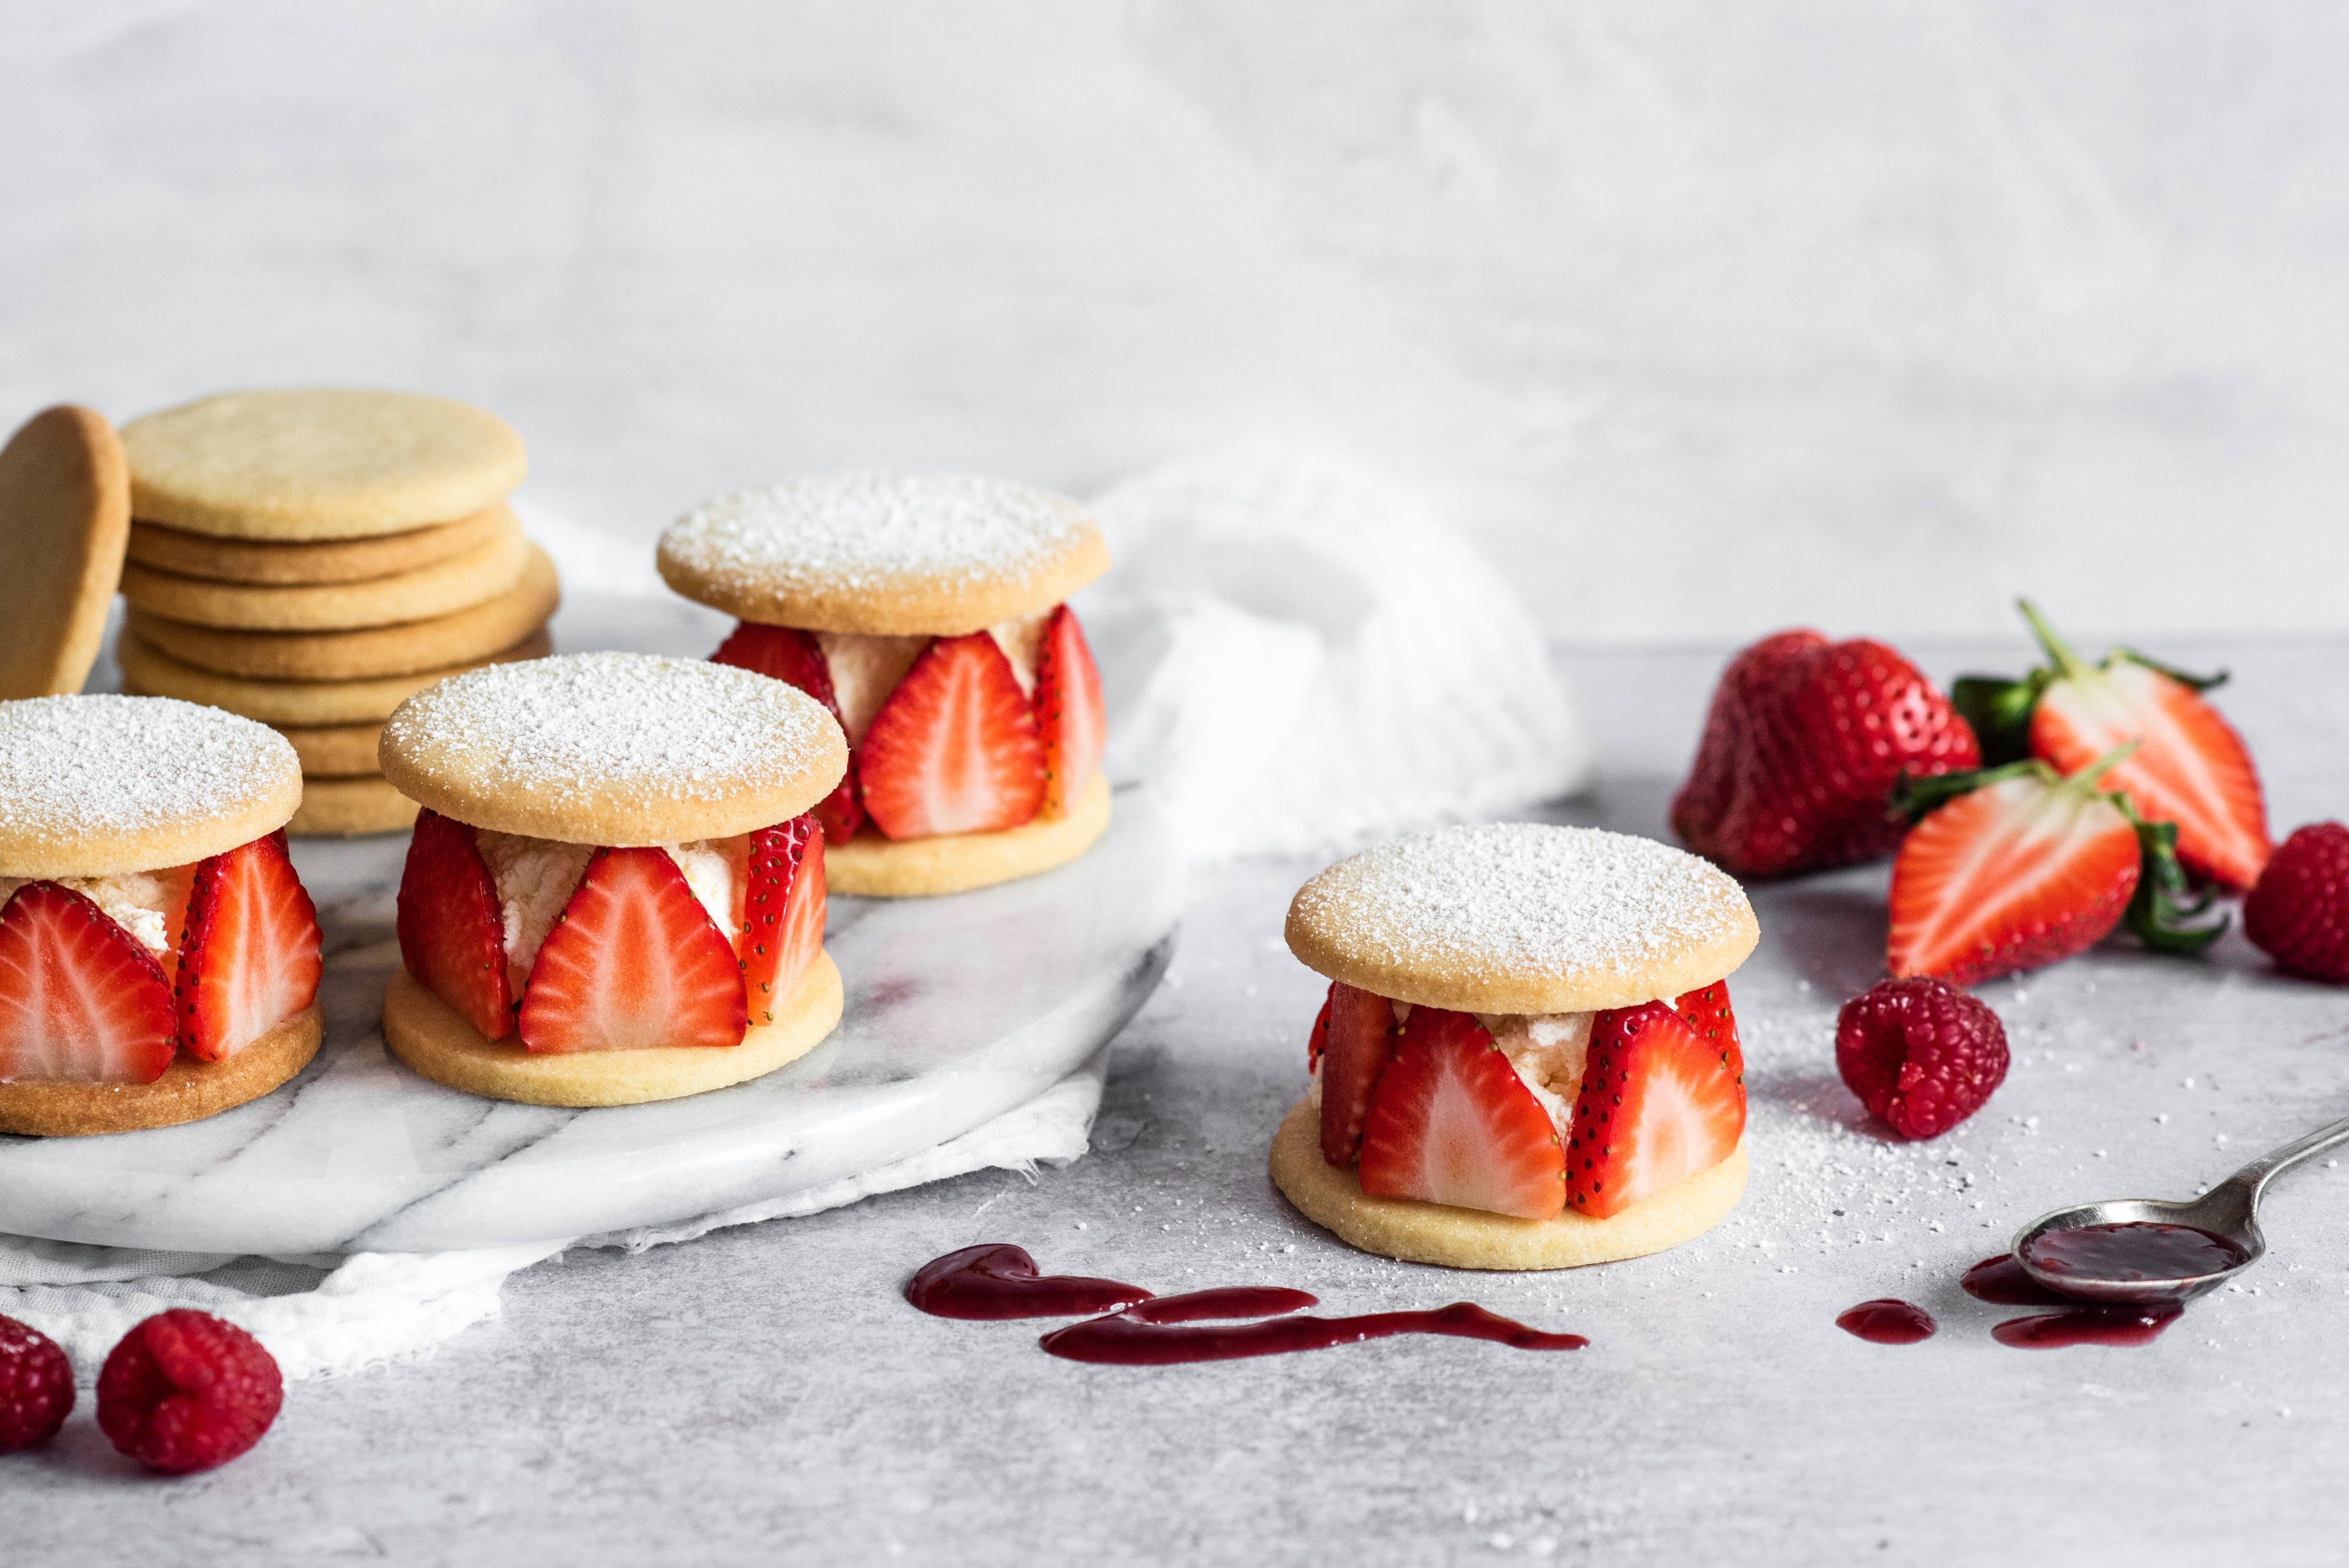 Shortbread rounds with sliced strawberries and cream sandwiched between